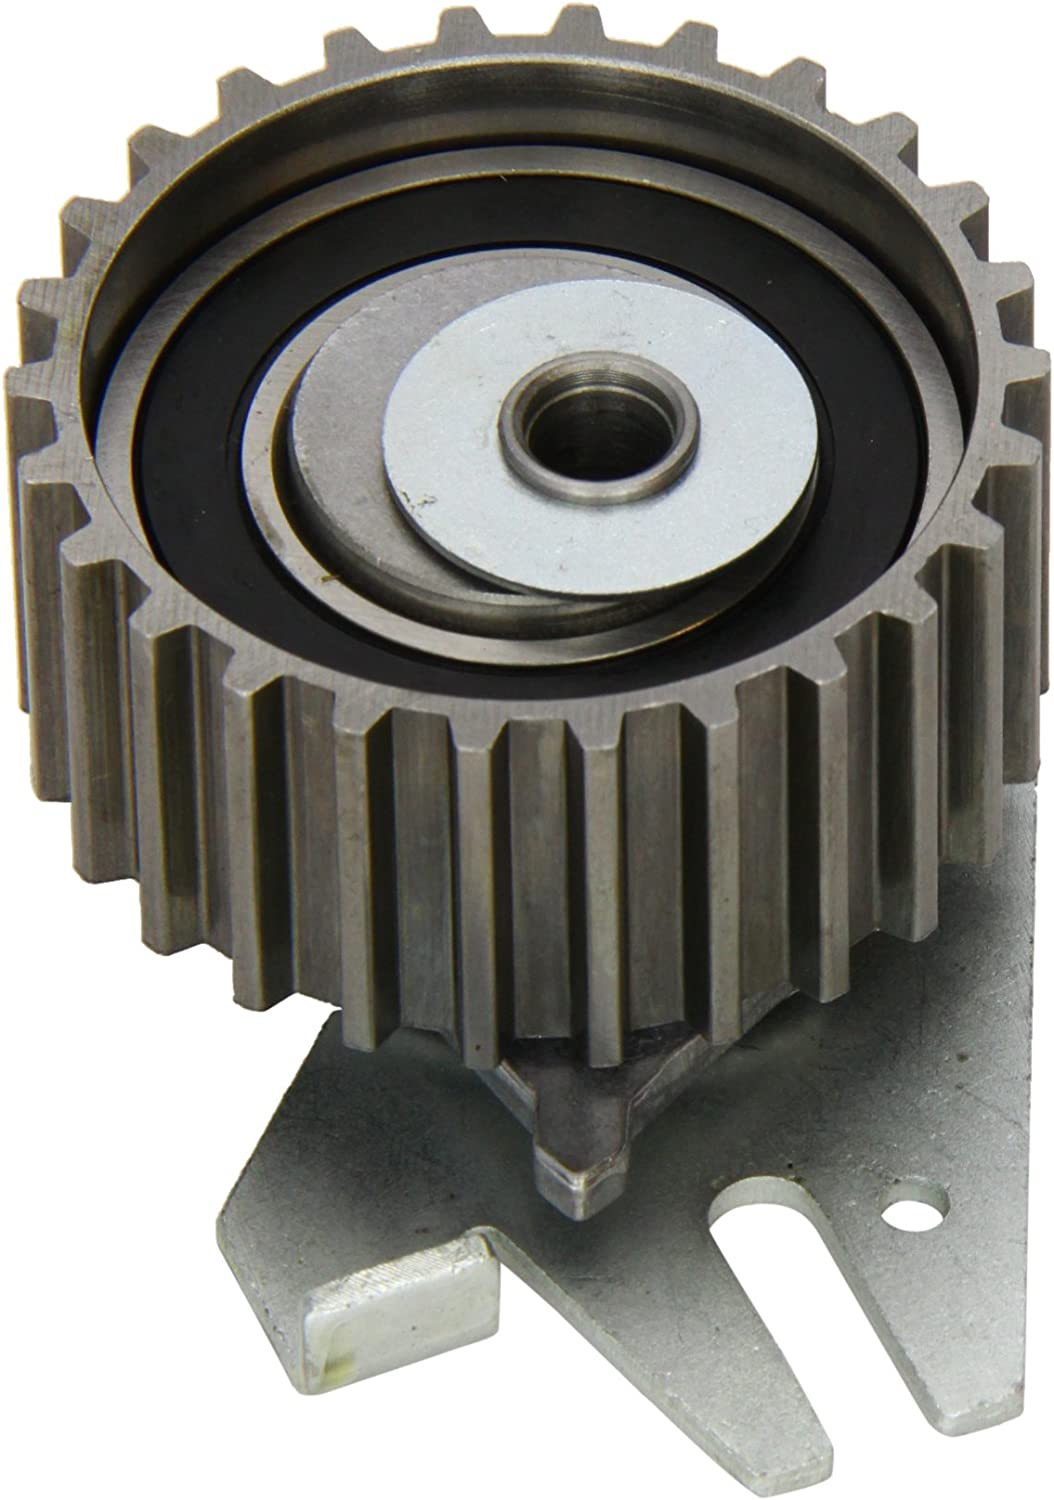 MAPCO 23061 Timing Belt Tensioner Pulley